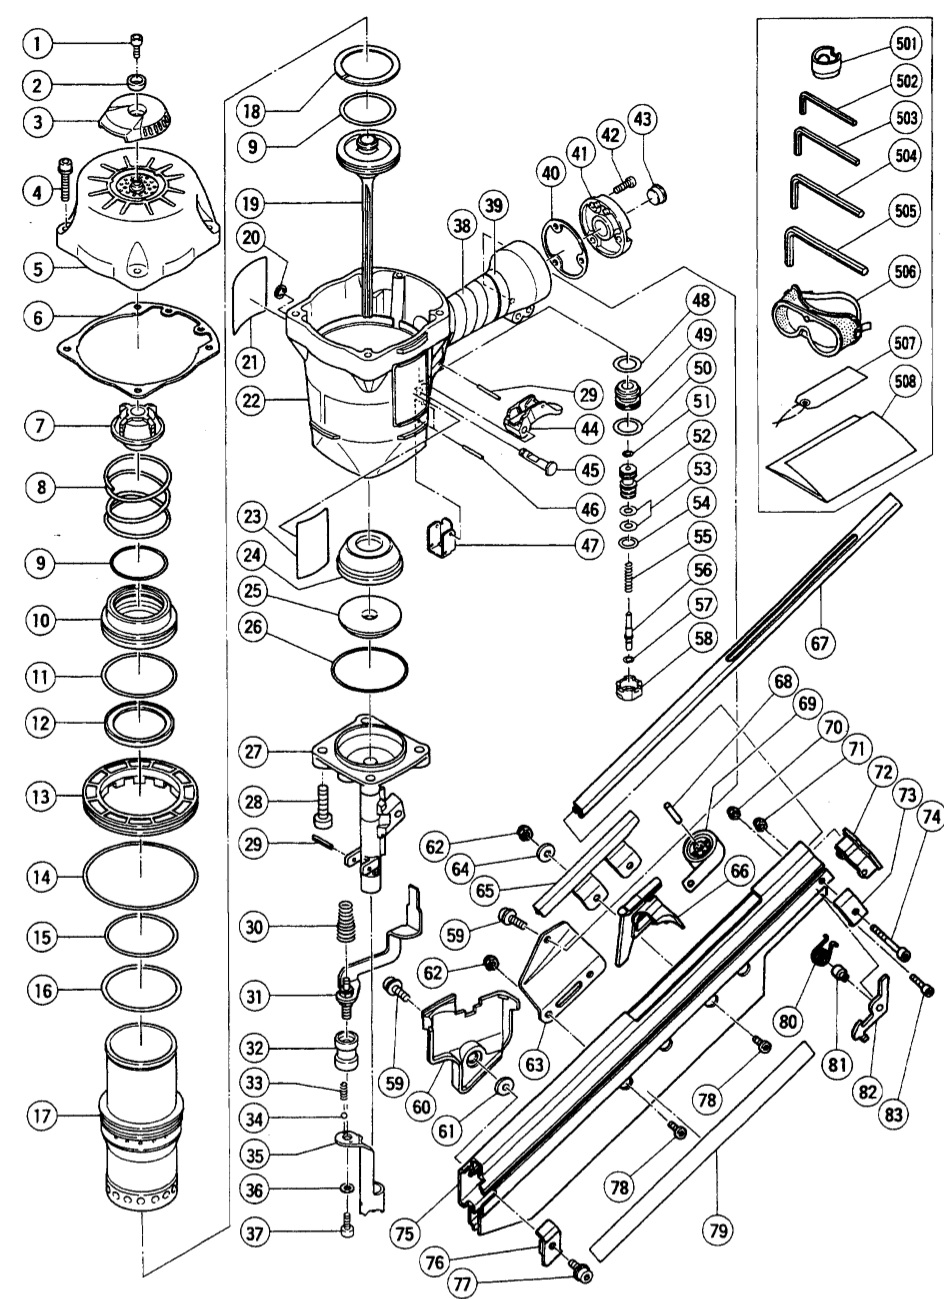 nr90aa pneumatic framing nailer parts schematic click to enlarge close slide to zoom image